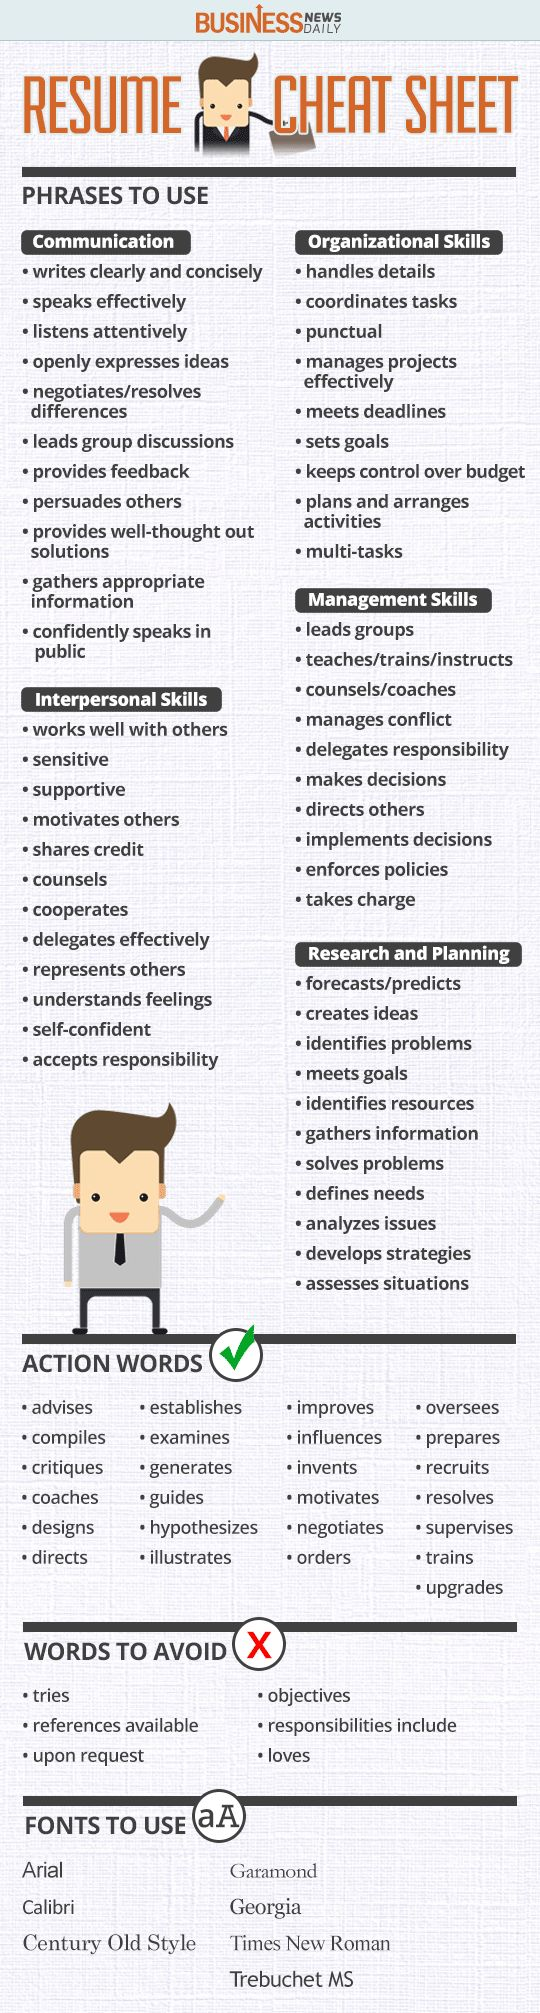 Opposenewapstandardsus  Personable  Ideas About Resume On Pinterest  Cv Format Resume Cv And  With Magnificent Resume Cheat Sheet Infographic Andrews Almost Done With A Complete Unit On Employment Which With Attractive Massage Therapy Resume Also Retail Resumes In Addition Should I Staple My Resume And Maintenance Supervisor Resume As Well As Federal Resume Examples Additionally Key Resume Words From Pinterestcom With Opposenewapstandardsus  Magnificent  Ideas About Resume On Pinterest  Cv Format Resume Cv And  With Attractive Resume Cheat Sheet Infographic Andrews Almost Done With A Complete Unit On Employment Which And Personable Massage Therapy Resume Also Retail Resumes In Addition Should I Staple My Resume From Pinterestcom